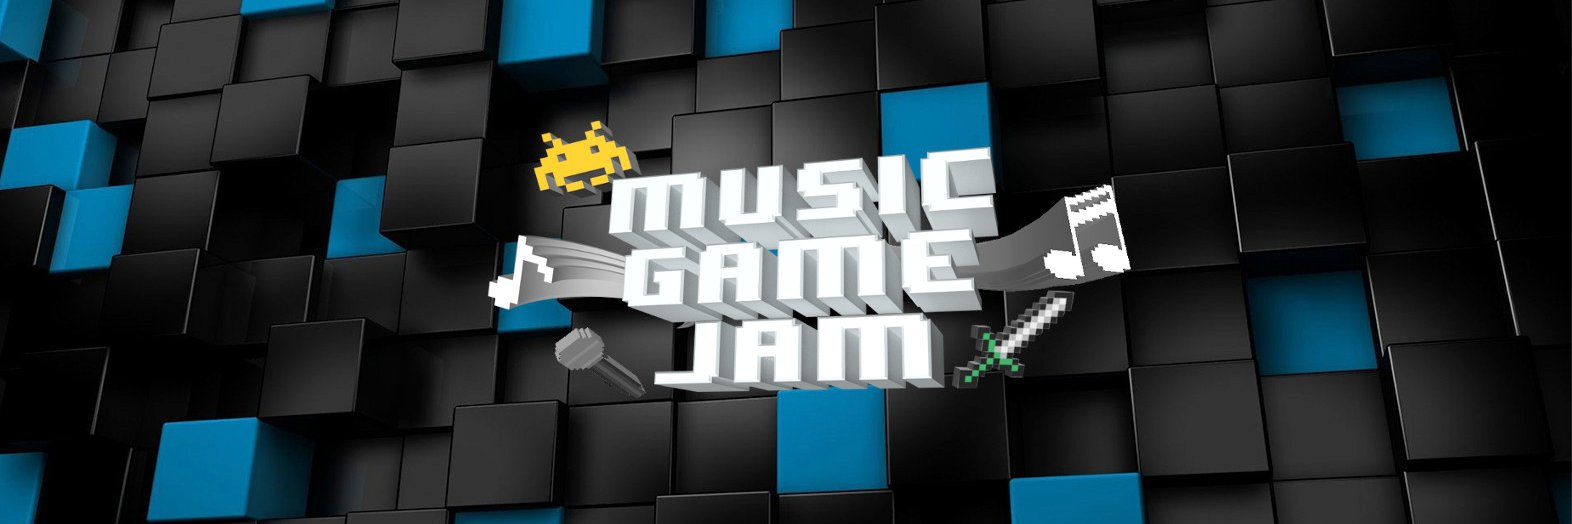 🔊🎶 #MUSICGAMEJAM IS BACK!! 🎶🎉 (1-15 September 2018) Make a music-related game and WIN PRIZES! 🎵🎮🏆 @Itchio… https://t.co/a1yhlmqhGz